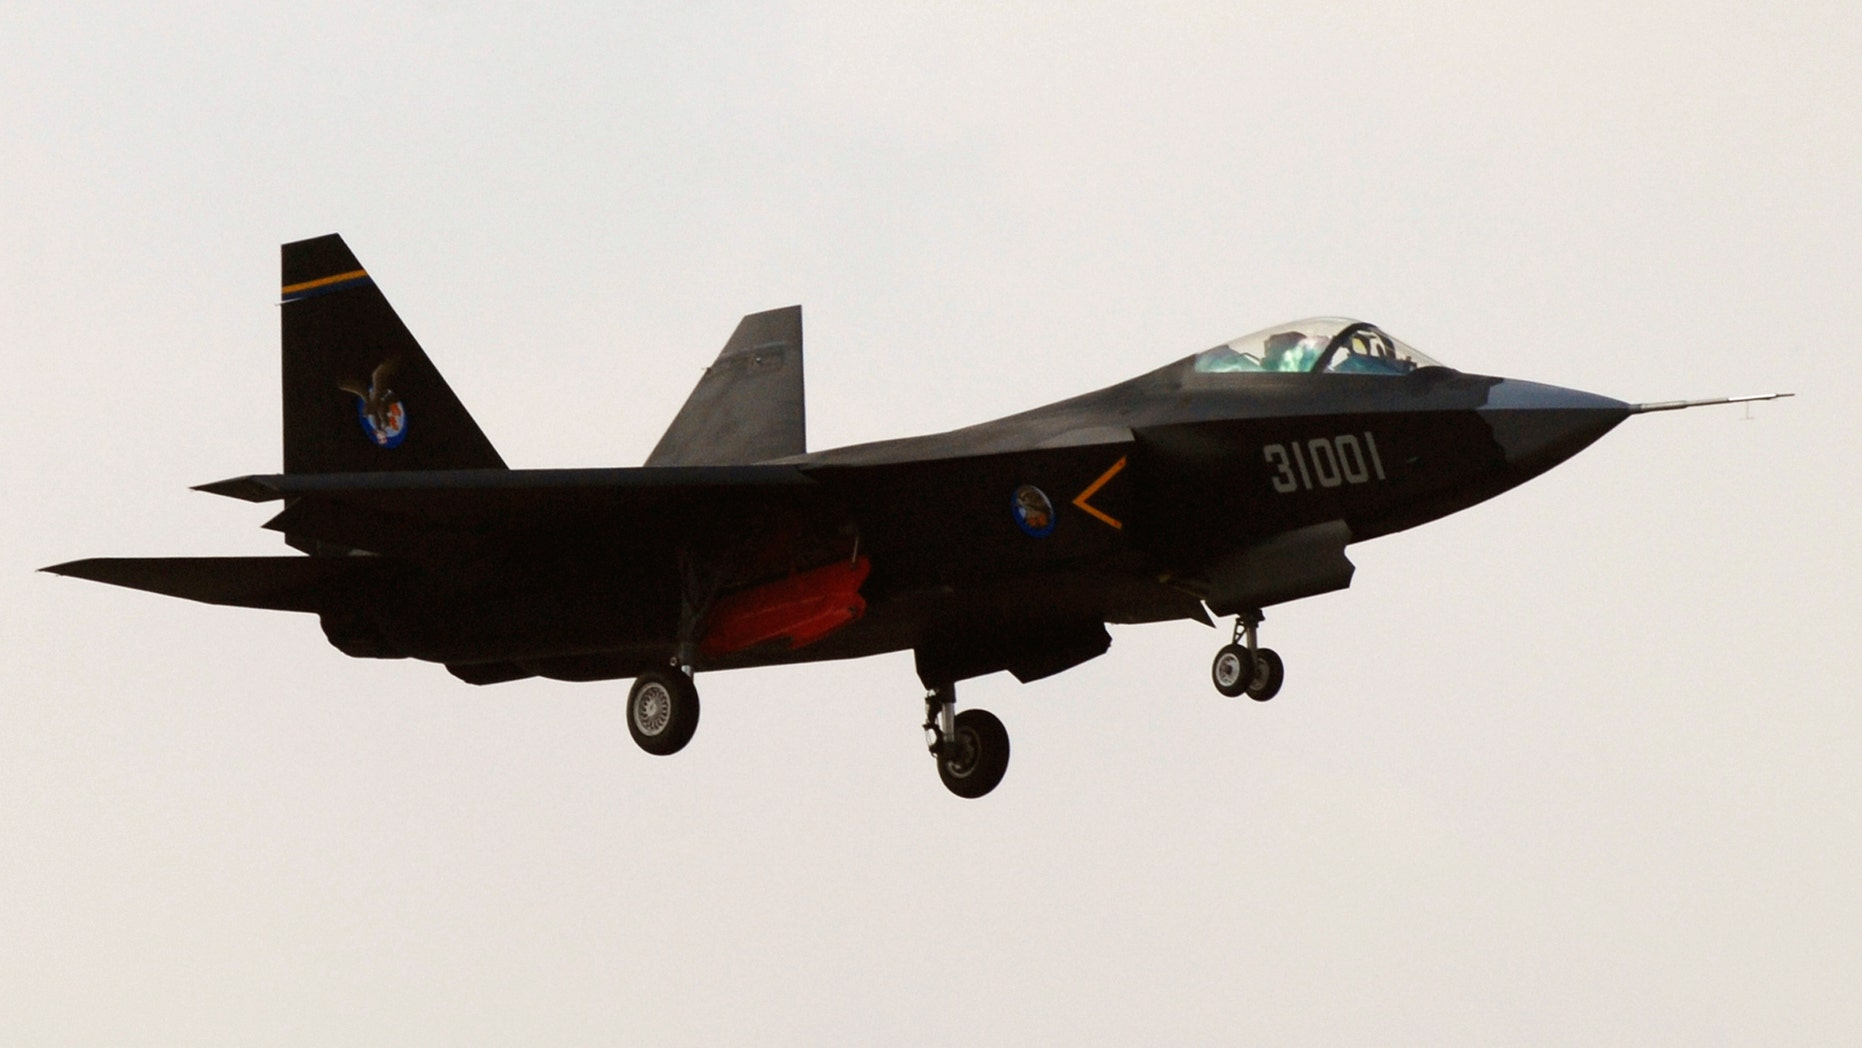 October 31, 2012: The J-31, or Falcon Hawk, participates in a test flight in Shenyang, Liaoning province, China.